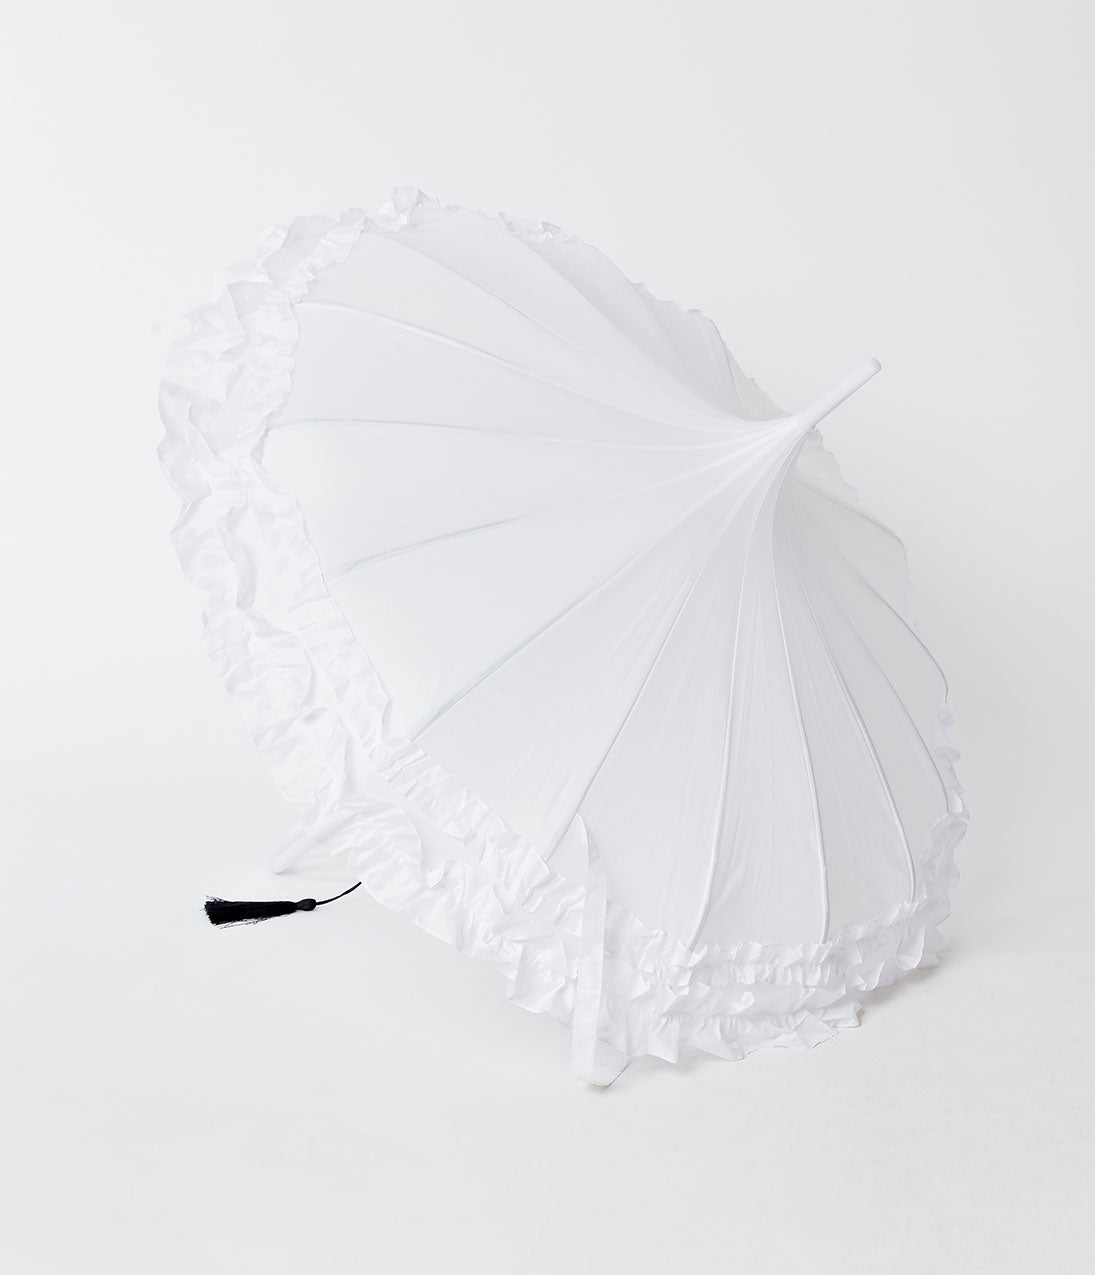 Vintage Style Parasols and Umbrellas Vintage Style White Pagoda Ruffle Gigi Umbrella $46.00 AT vintagedancer.com